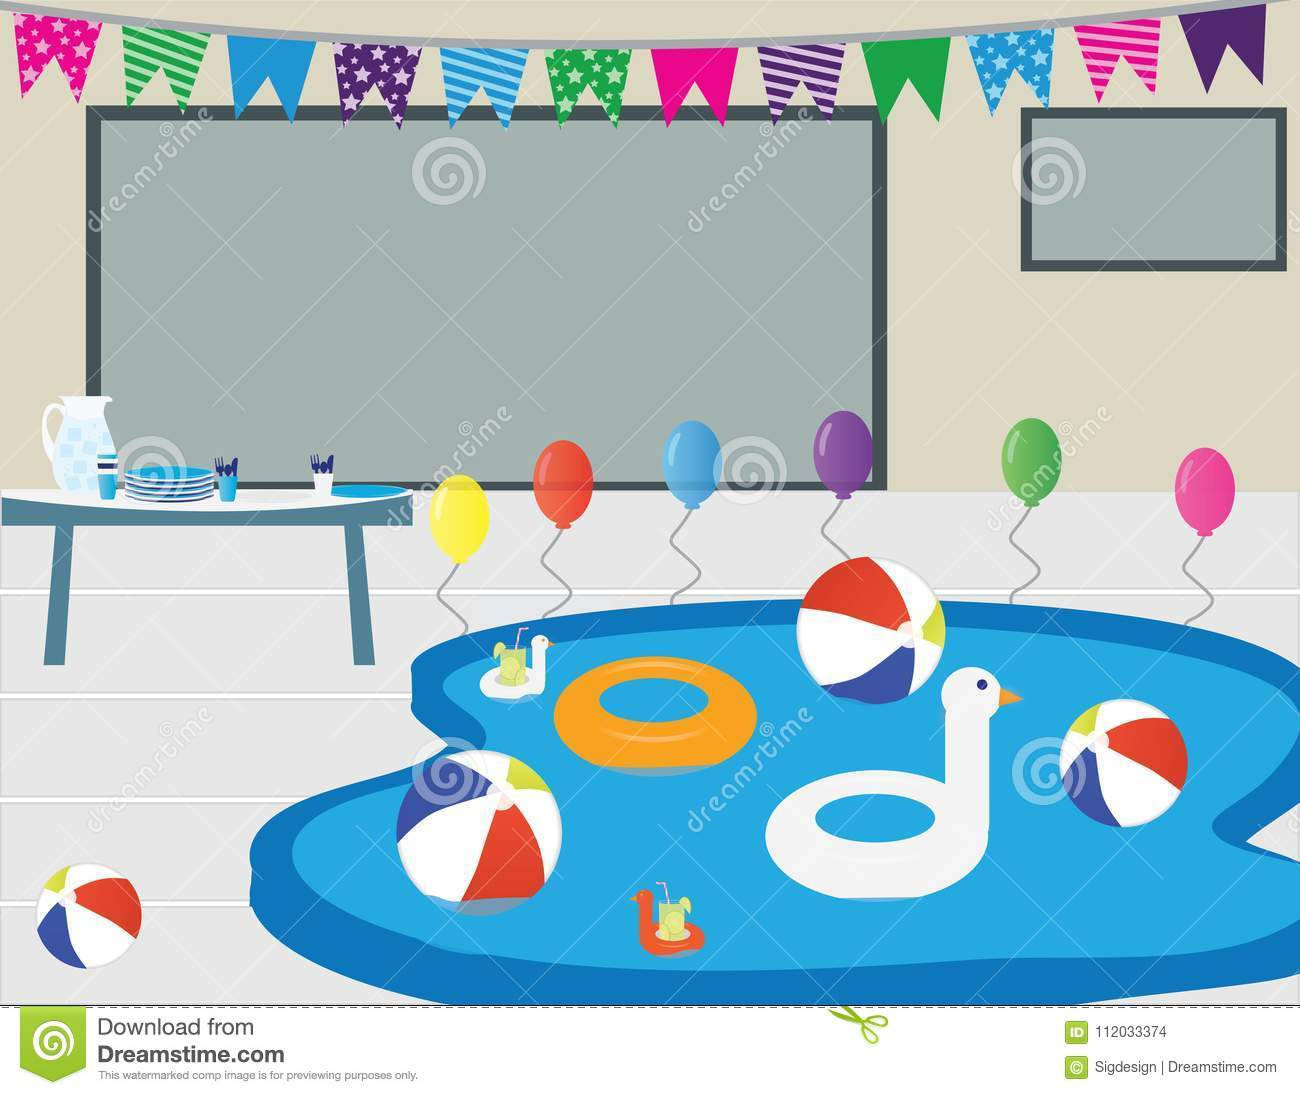 House Pool Party Decorations And Food Stock Vector Illustration Of - Inflatable picnic table